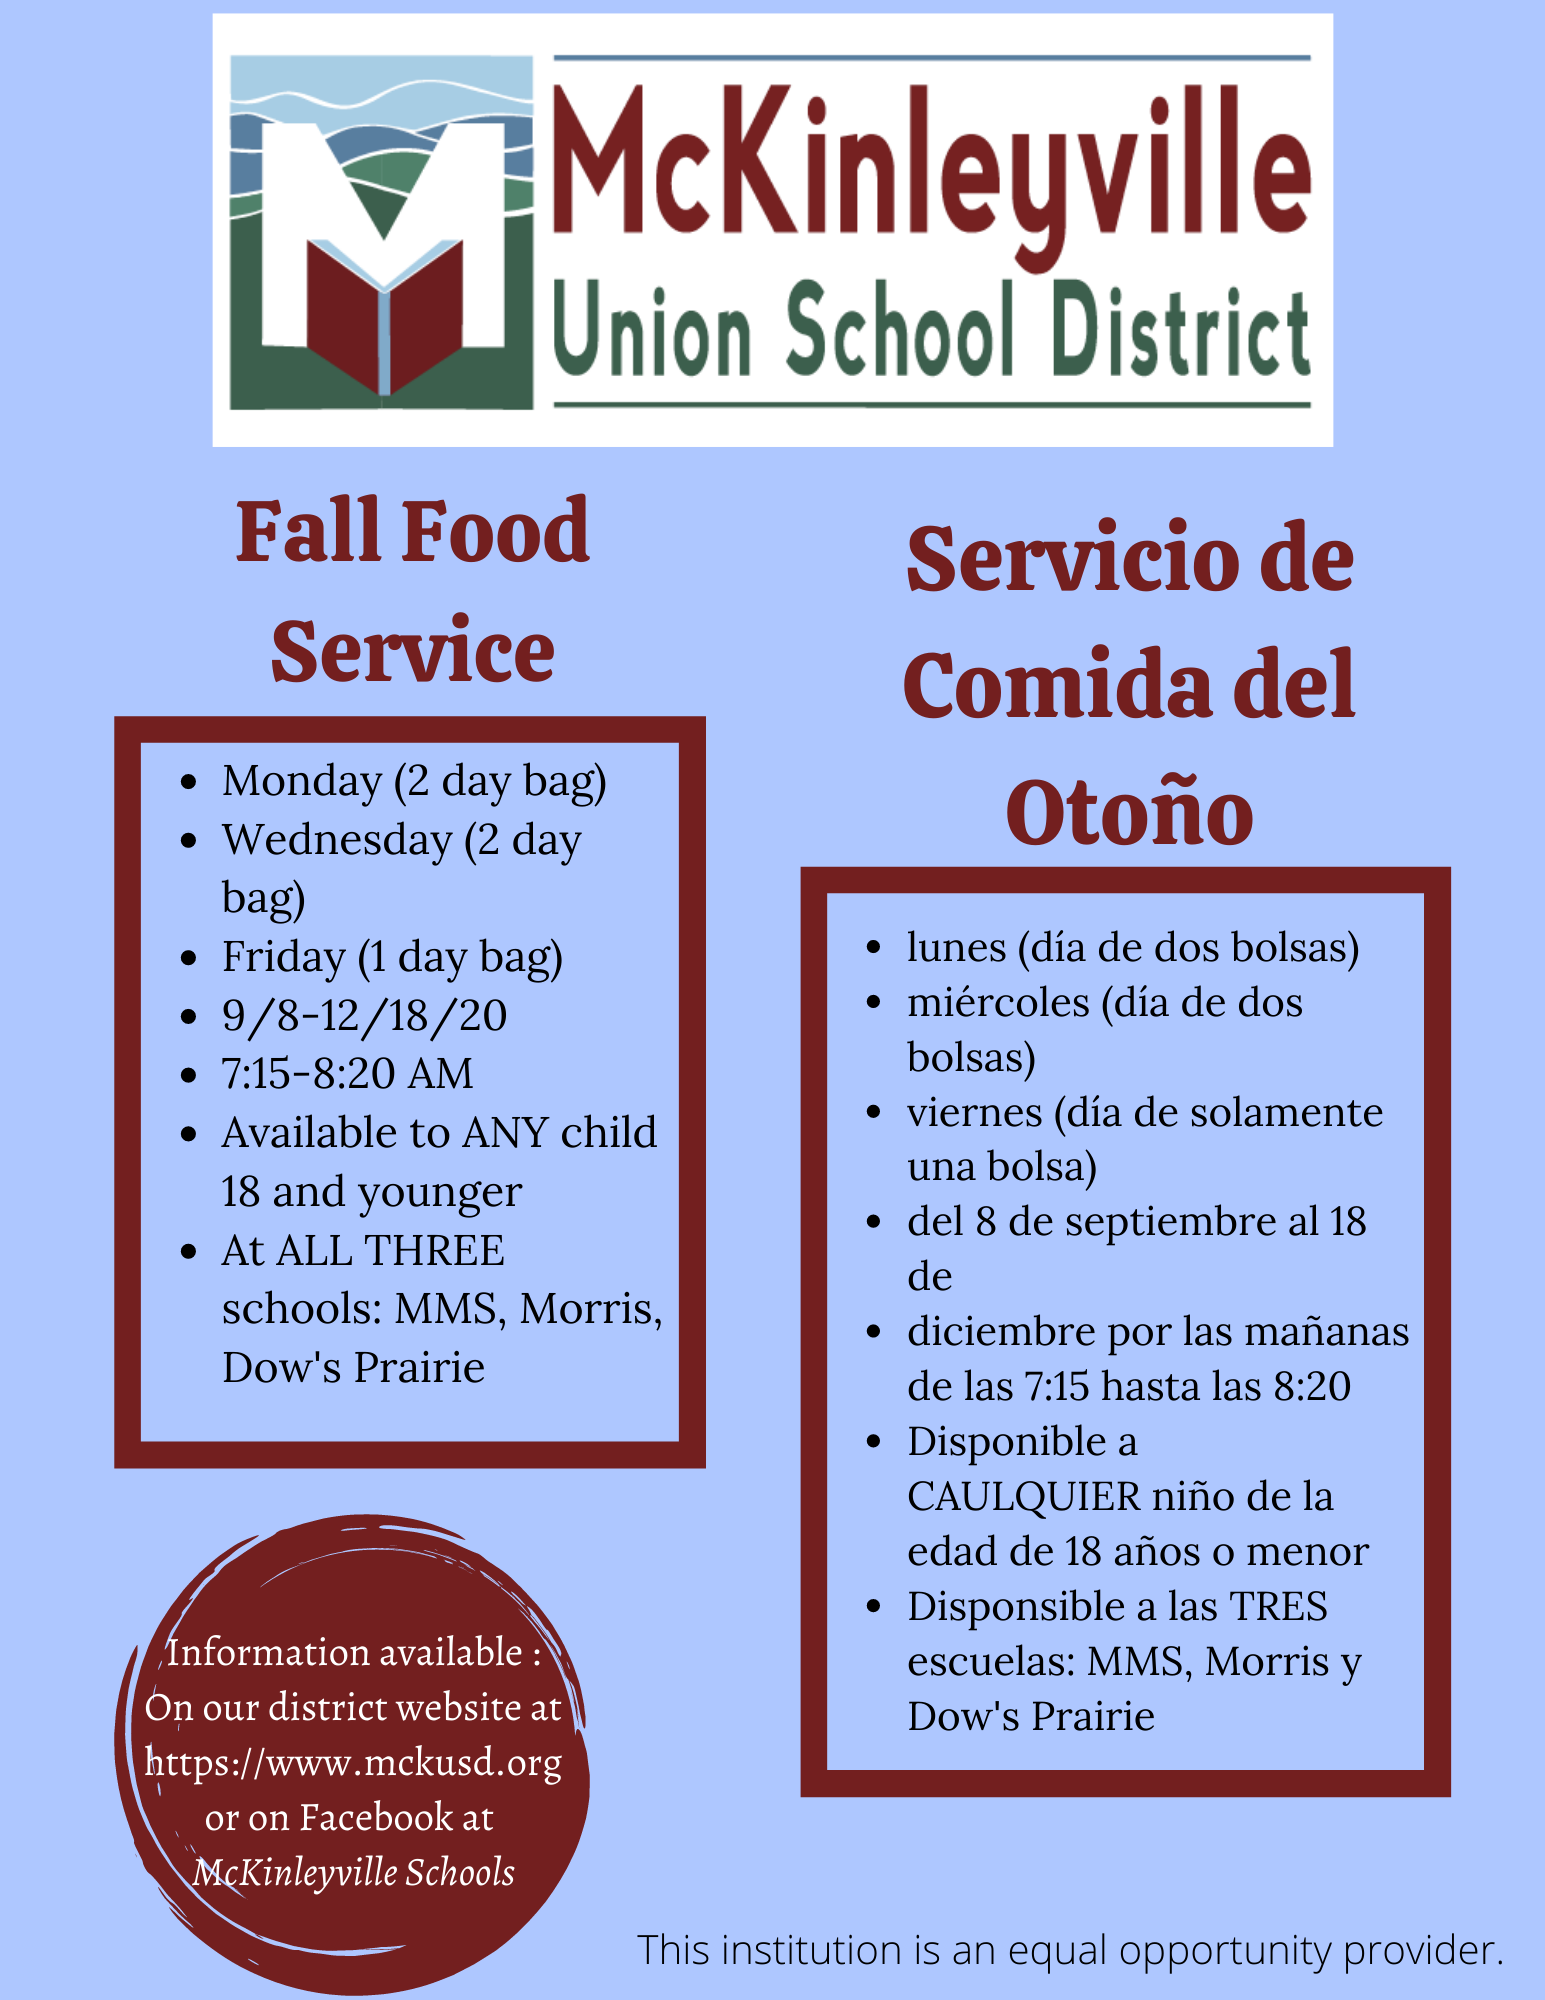 Fall Meal schedule